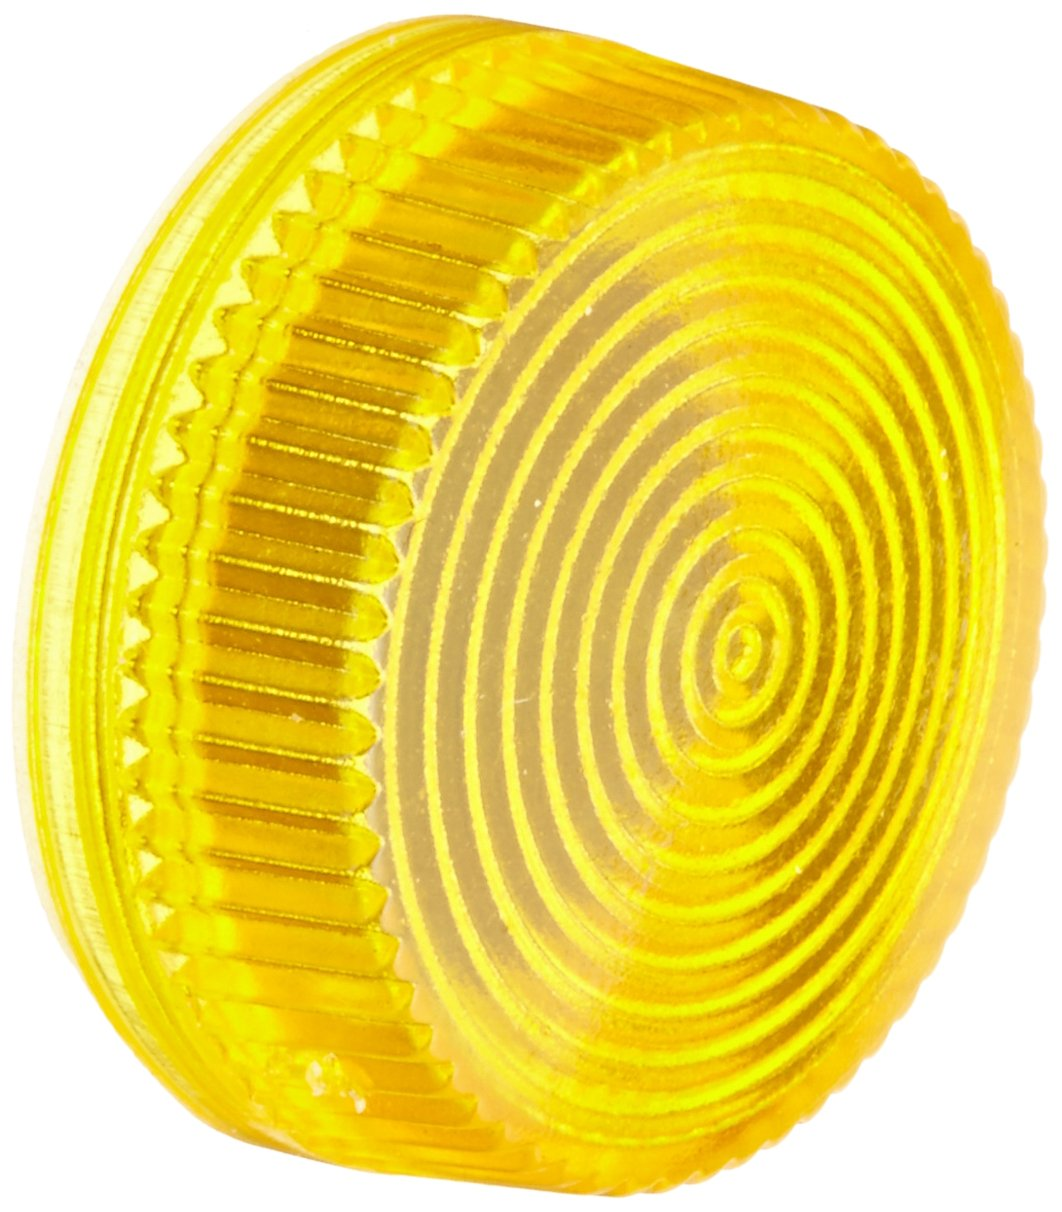 Yellow Concentric Rings Used With 3SB2 Light Indicators 3SB29101AD Siemens 3SB29 10-1AD Screw Lens